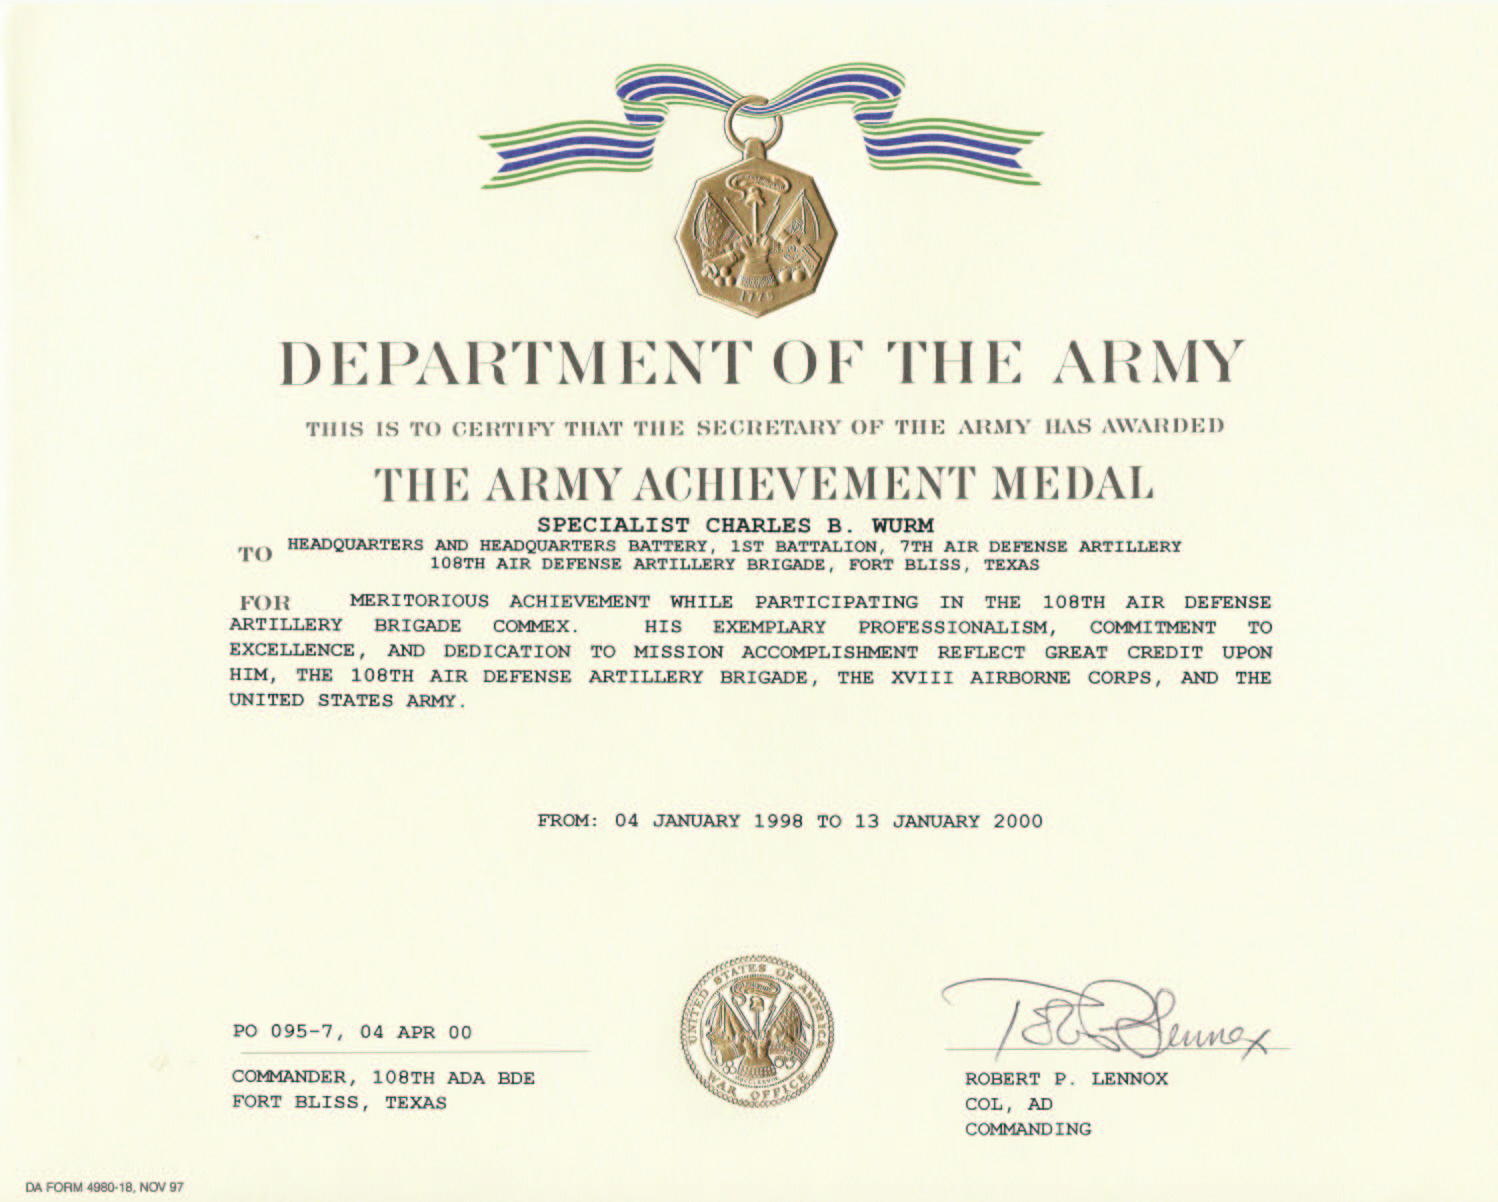 Certificate of achievement template army images templates army achievement medal certificate template choice image army achievement medal certificate template choice image army achievement yelopaper Images